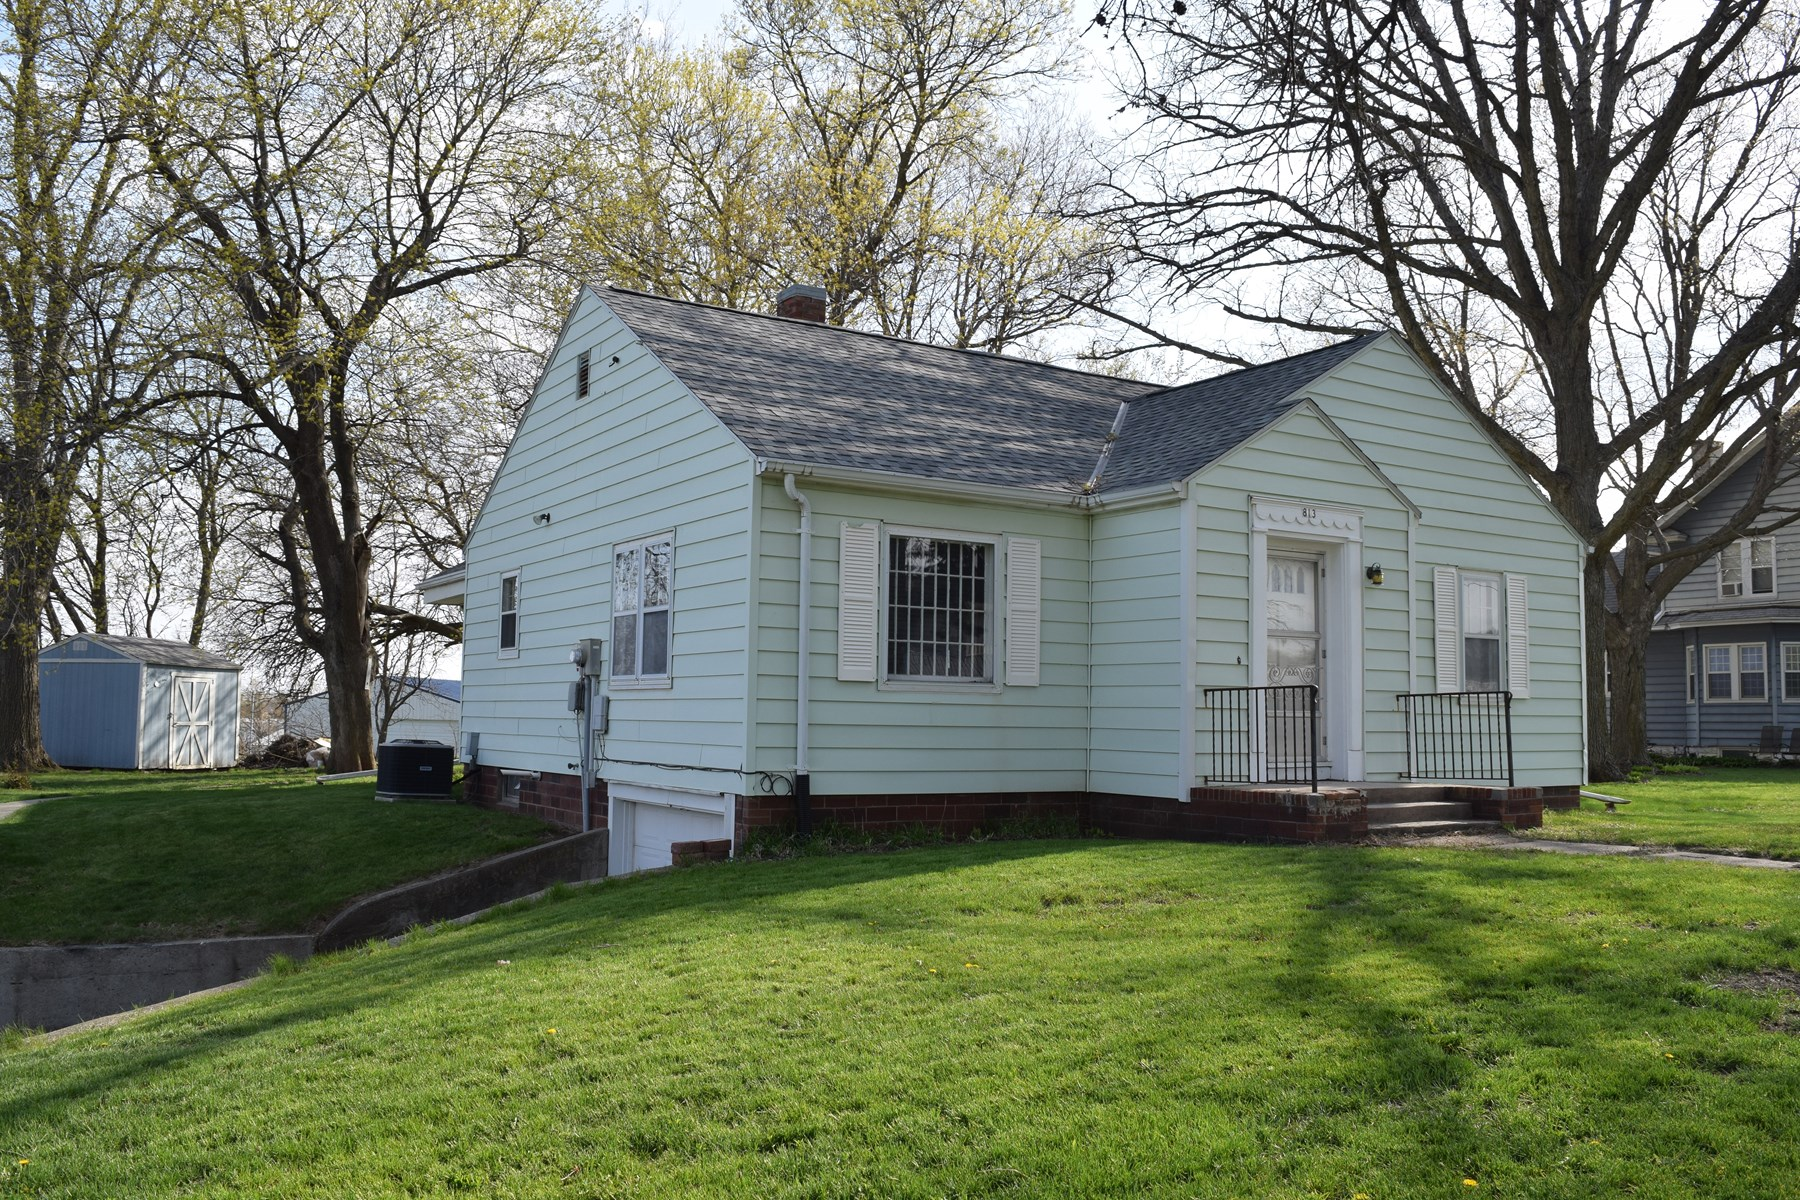 One-Story, 2 Bedroom Home in Shelby County, Harlan, IA